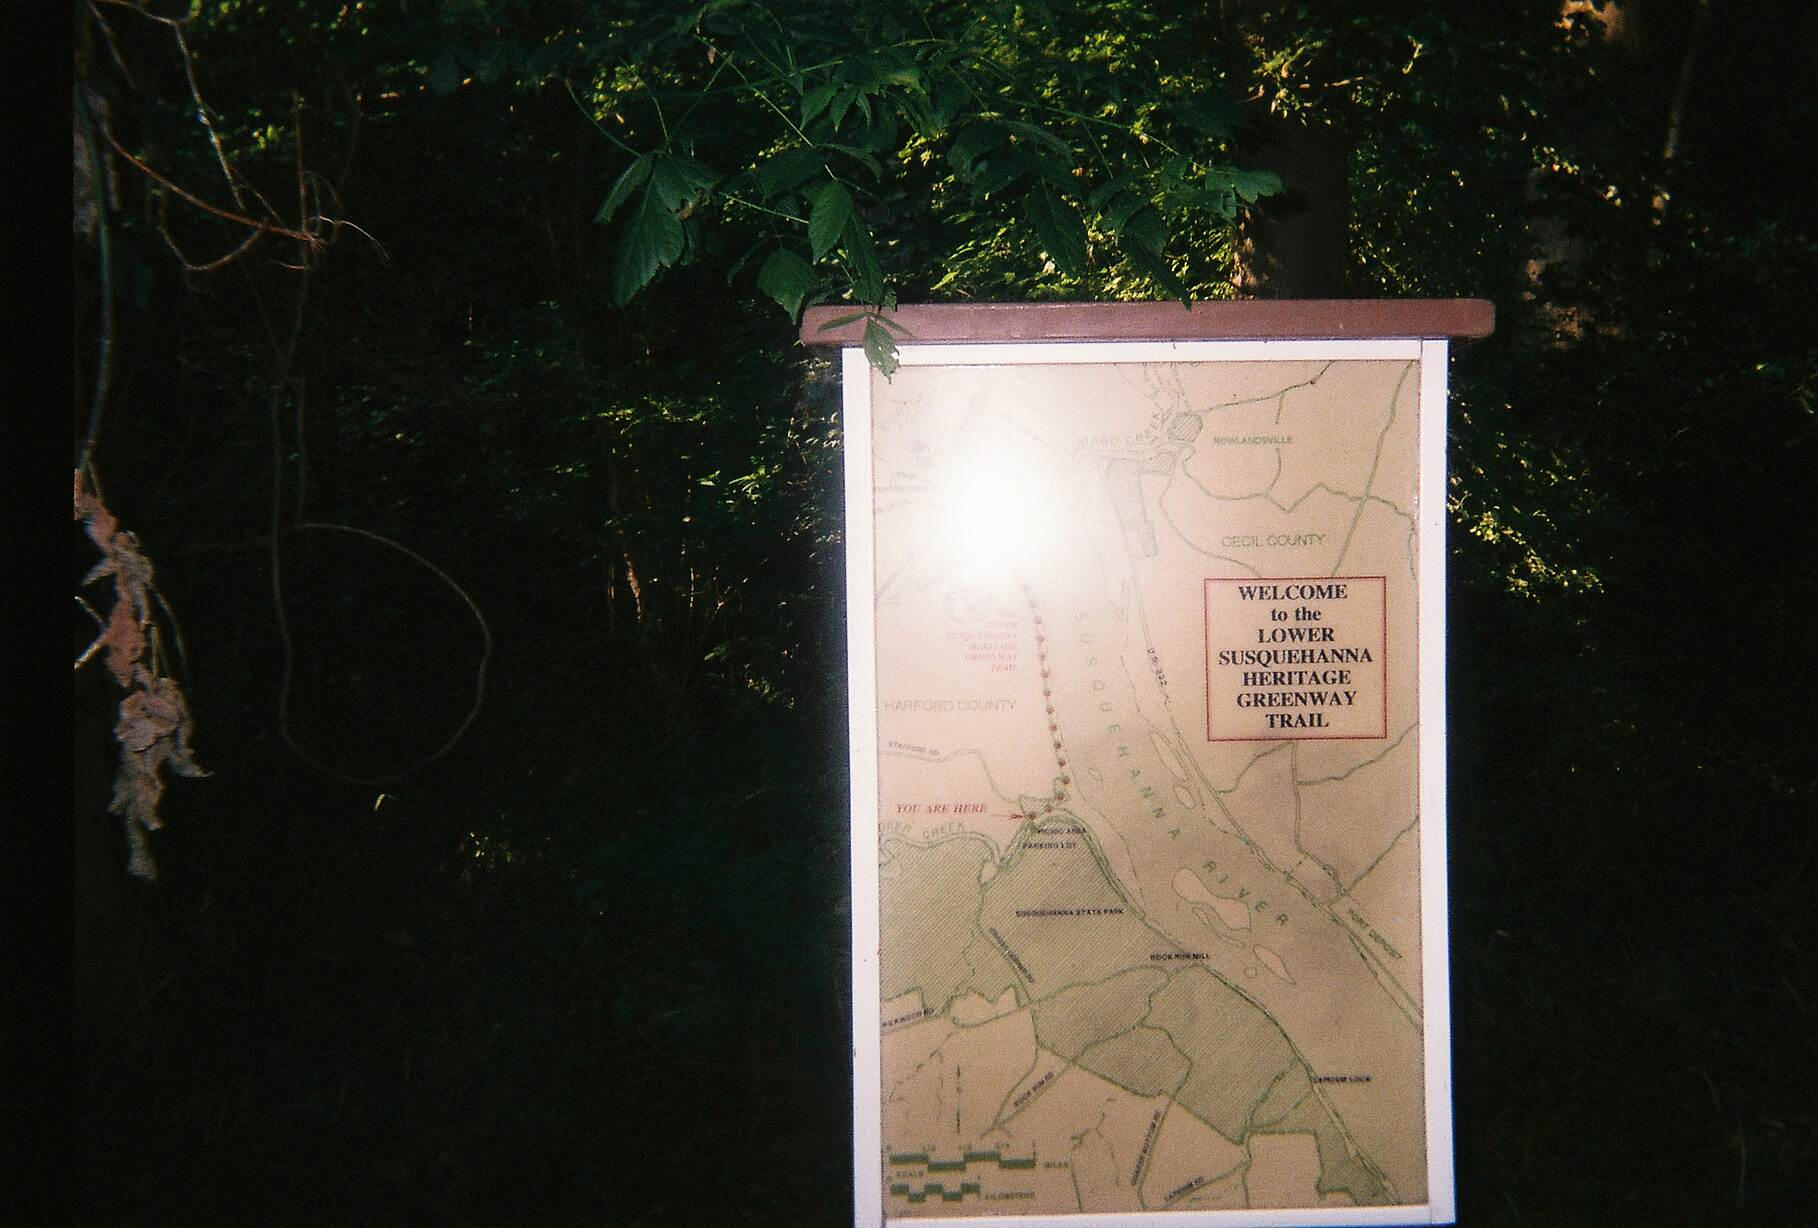 Lower Susquehanna Heritage Greenway Trail Lower Susquehanna Heritage Greenway Trail Map of the trail located off Stafford Road next to the flint furnace. The dotted line represents the northern, multi-use portion, while a solid line shows the more primitive, southern section.